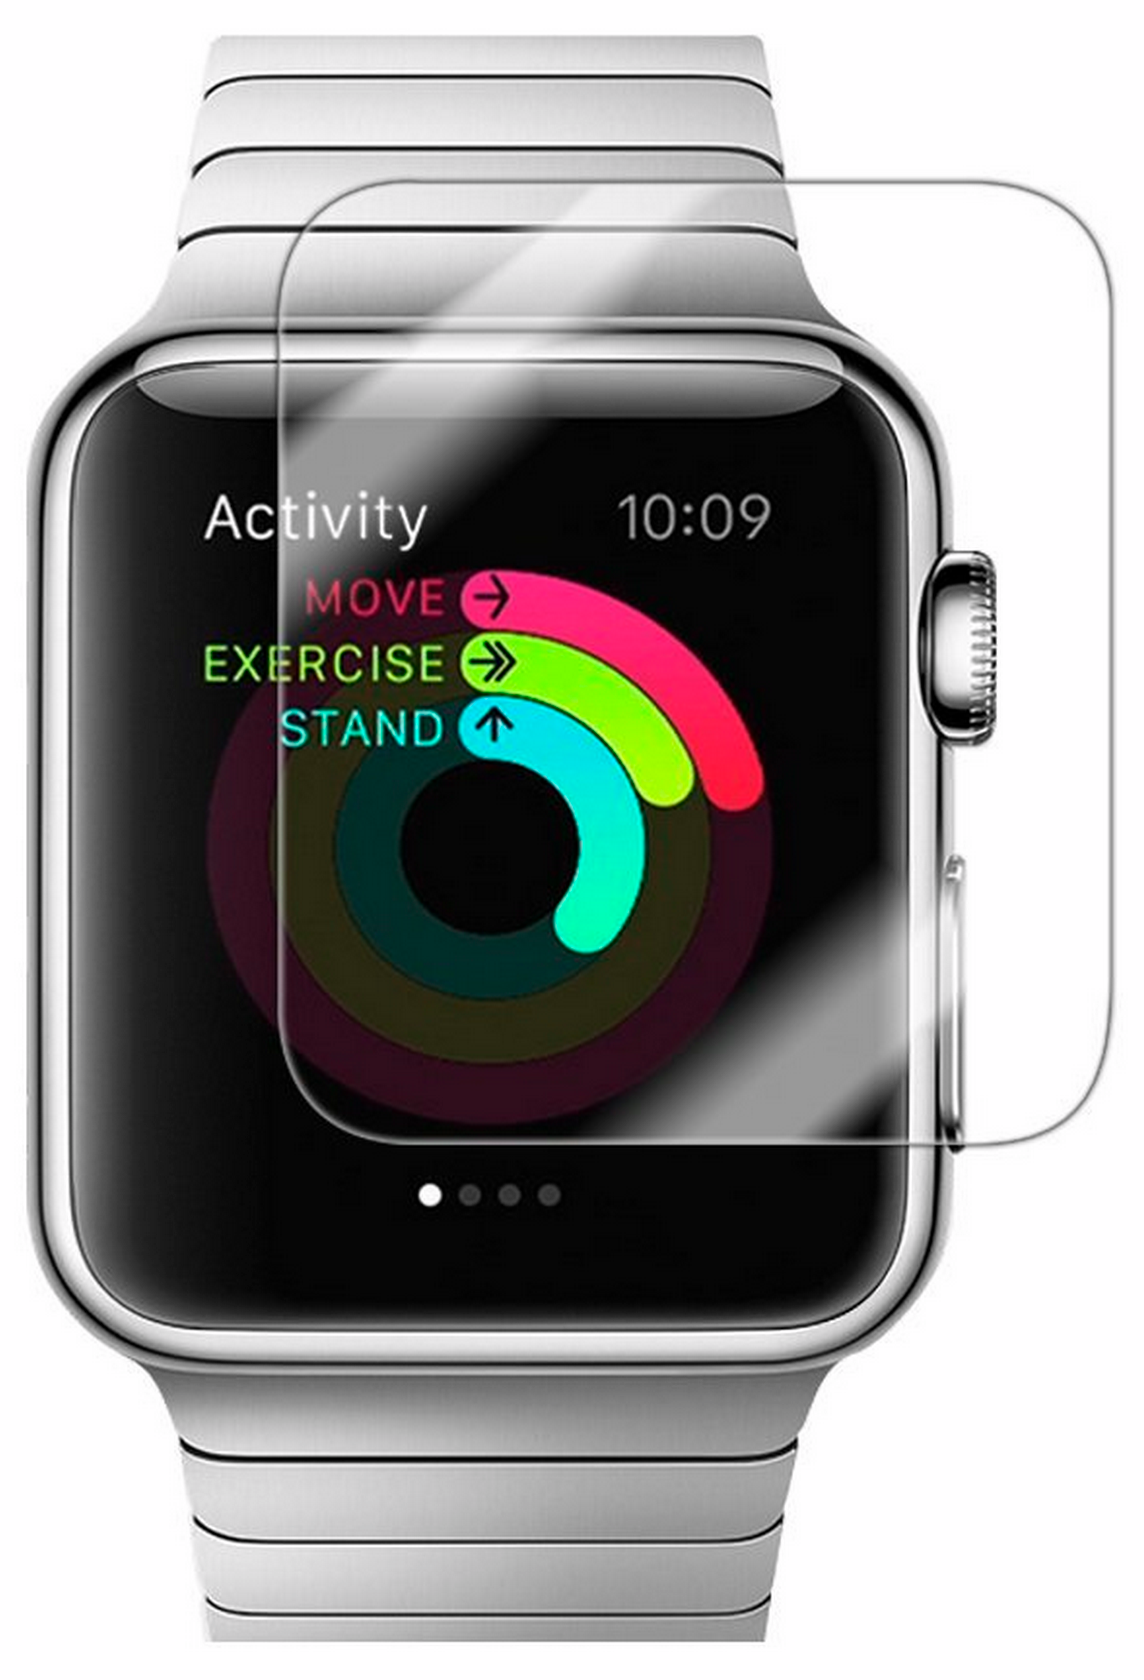 quality design 84680 44857 The best Apple Watch accessories: bands, cases, docks, screen ...